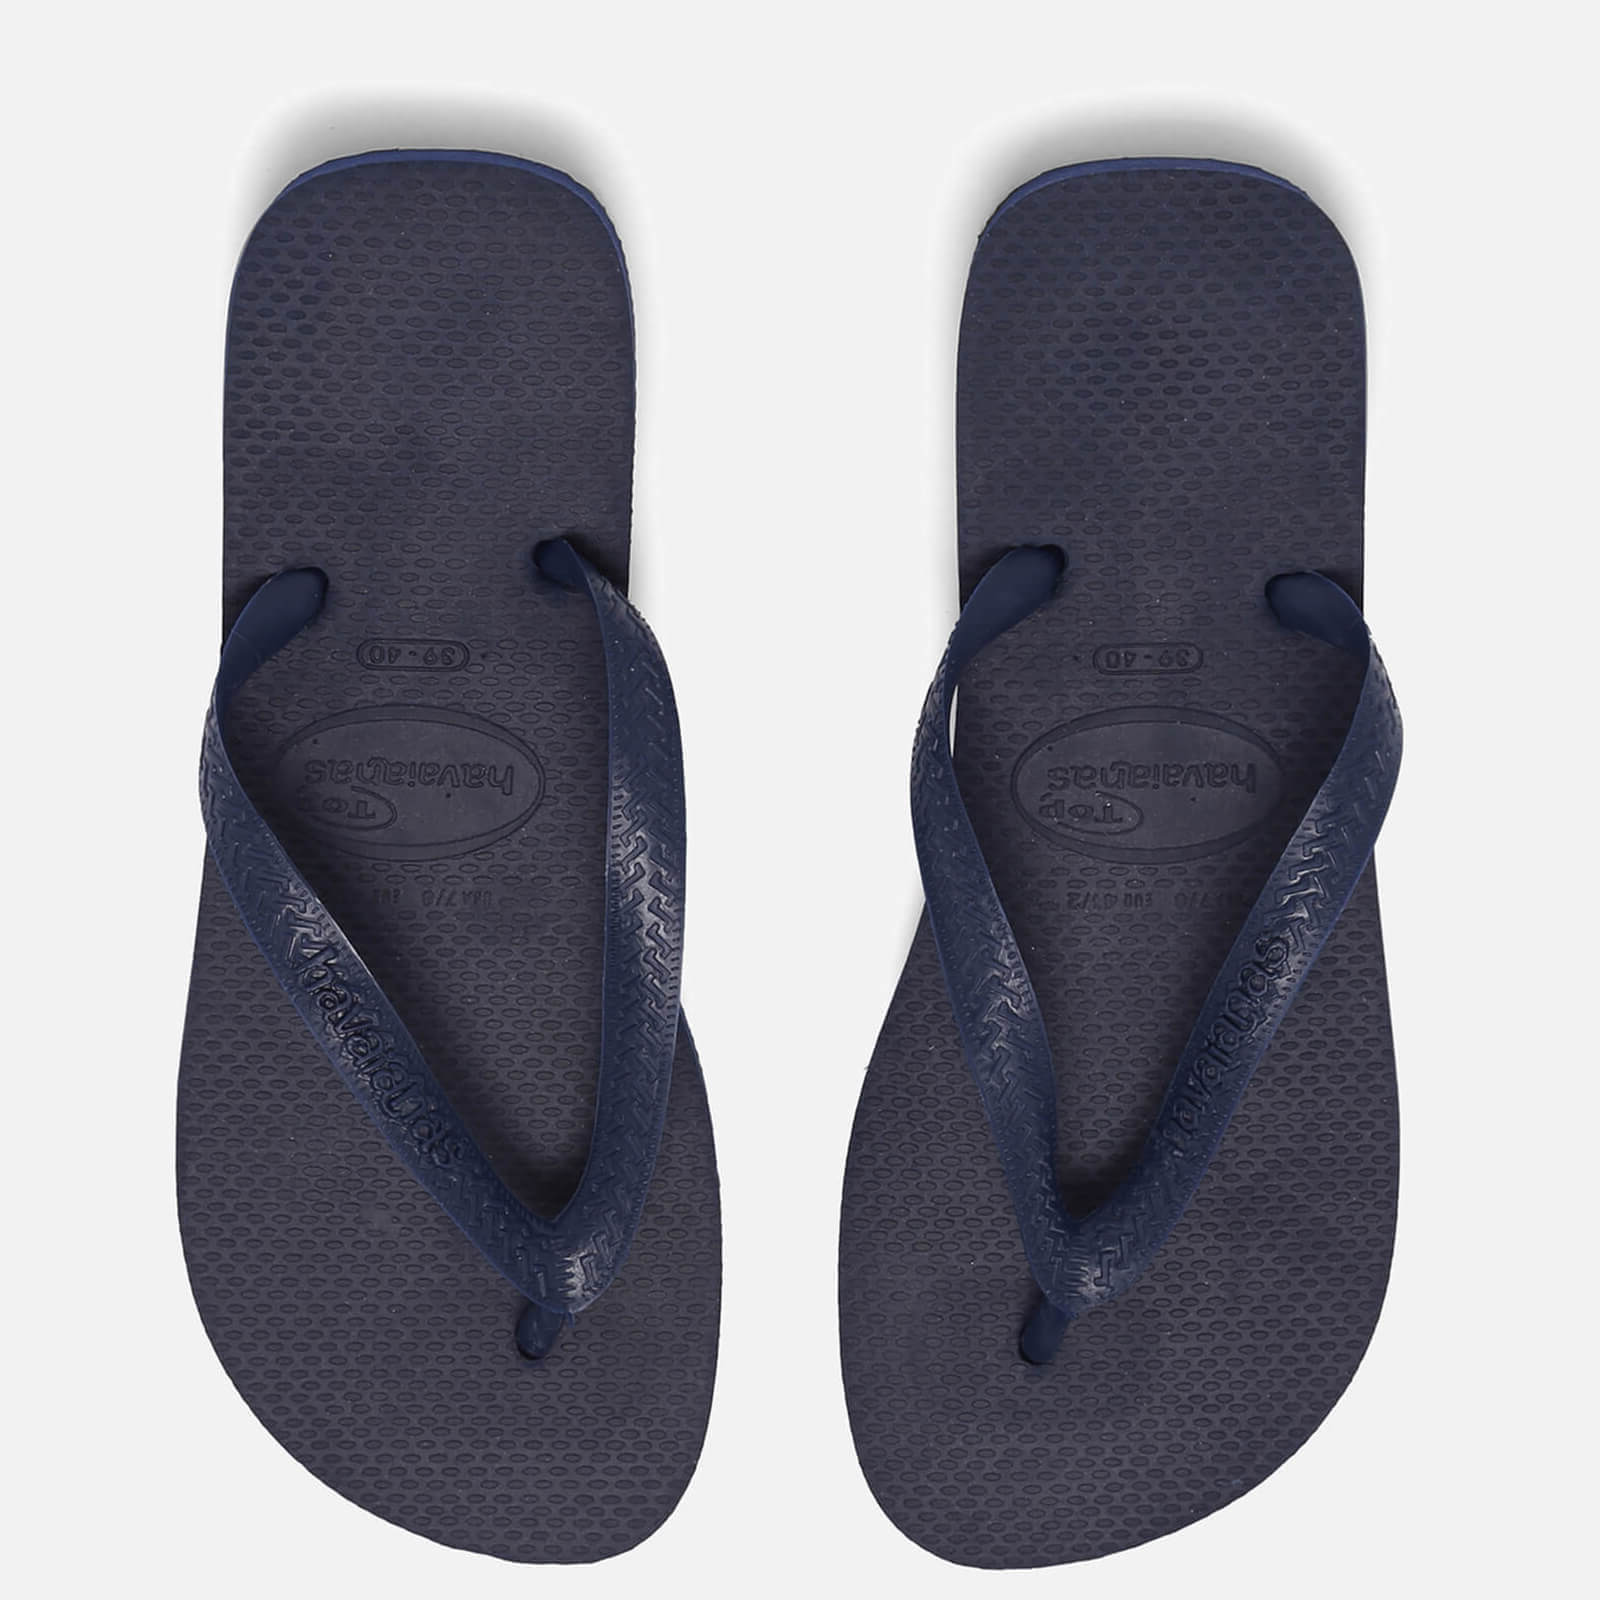 7aa109635d3 Havaianas Top Flip Flops - Navy Blue Womens Footwear